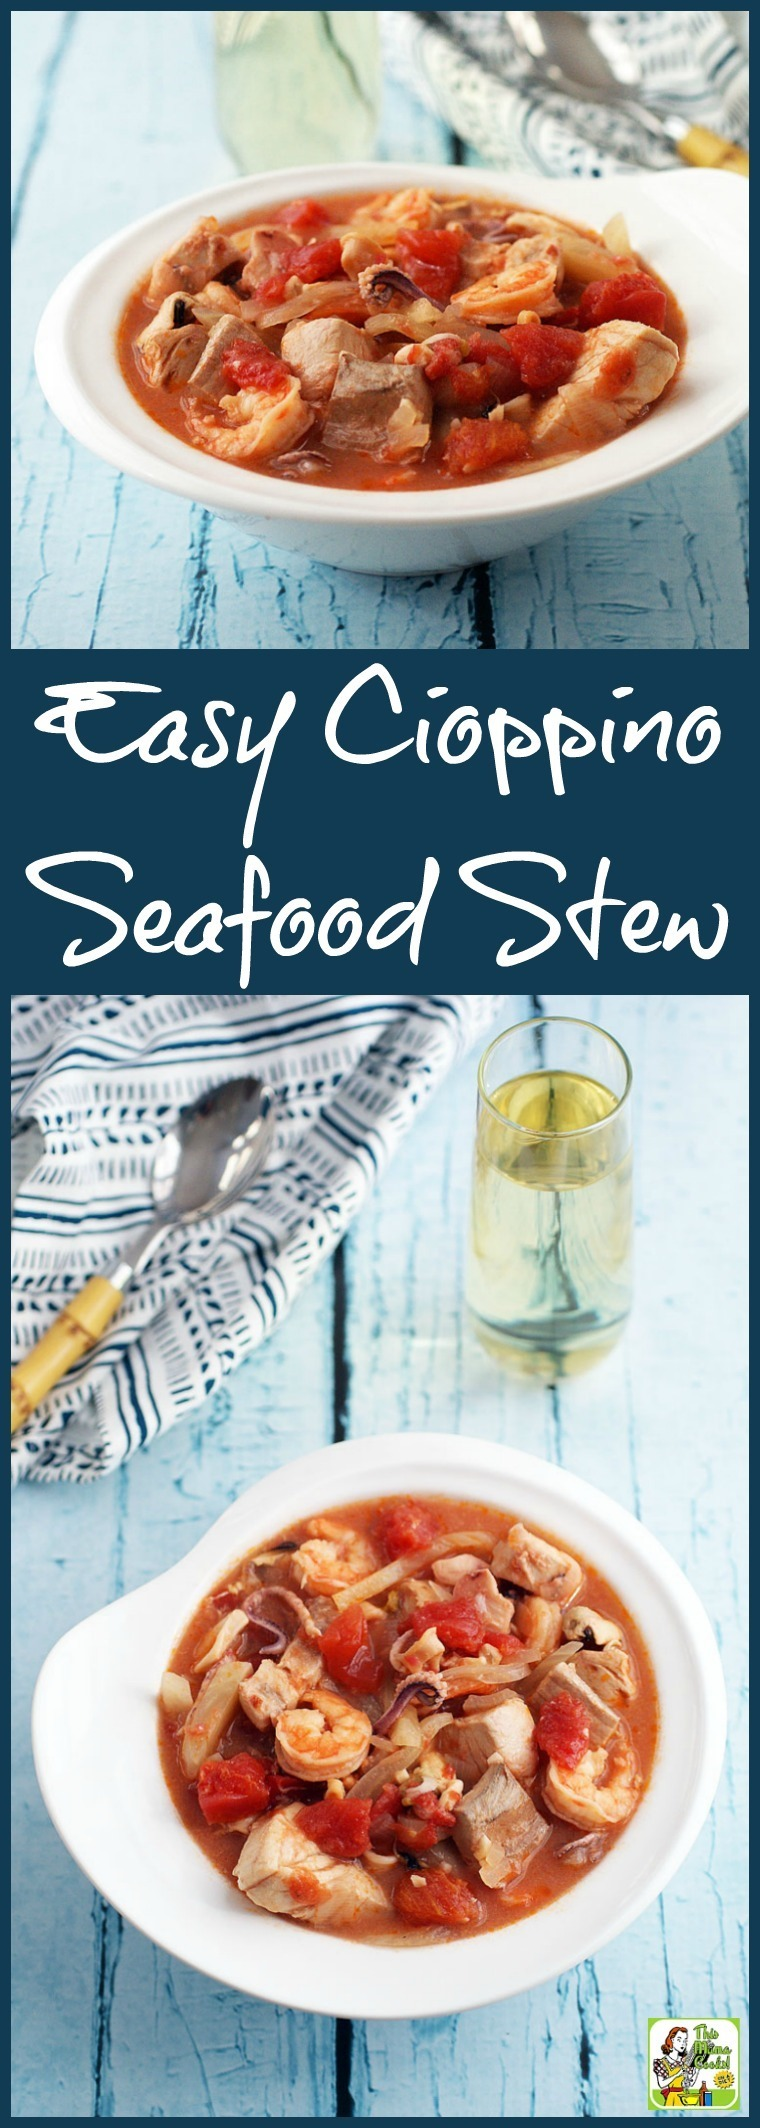 Easy Cioppino Seafood Stew #seafoodstew